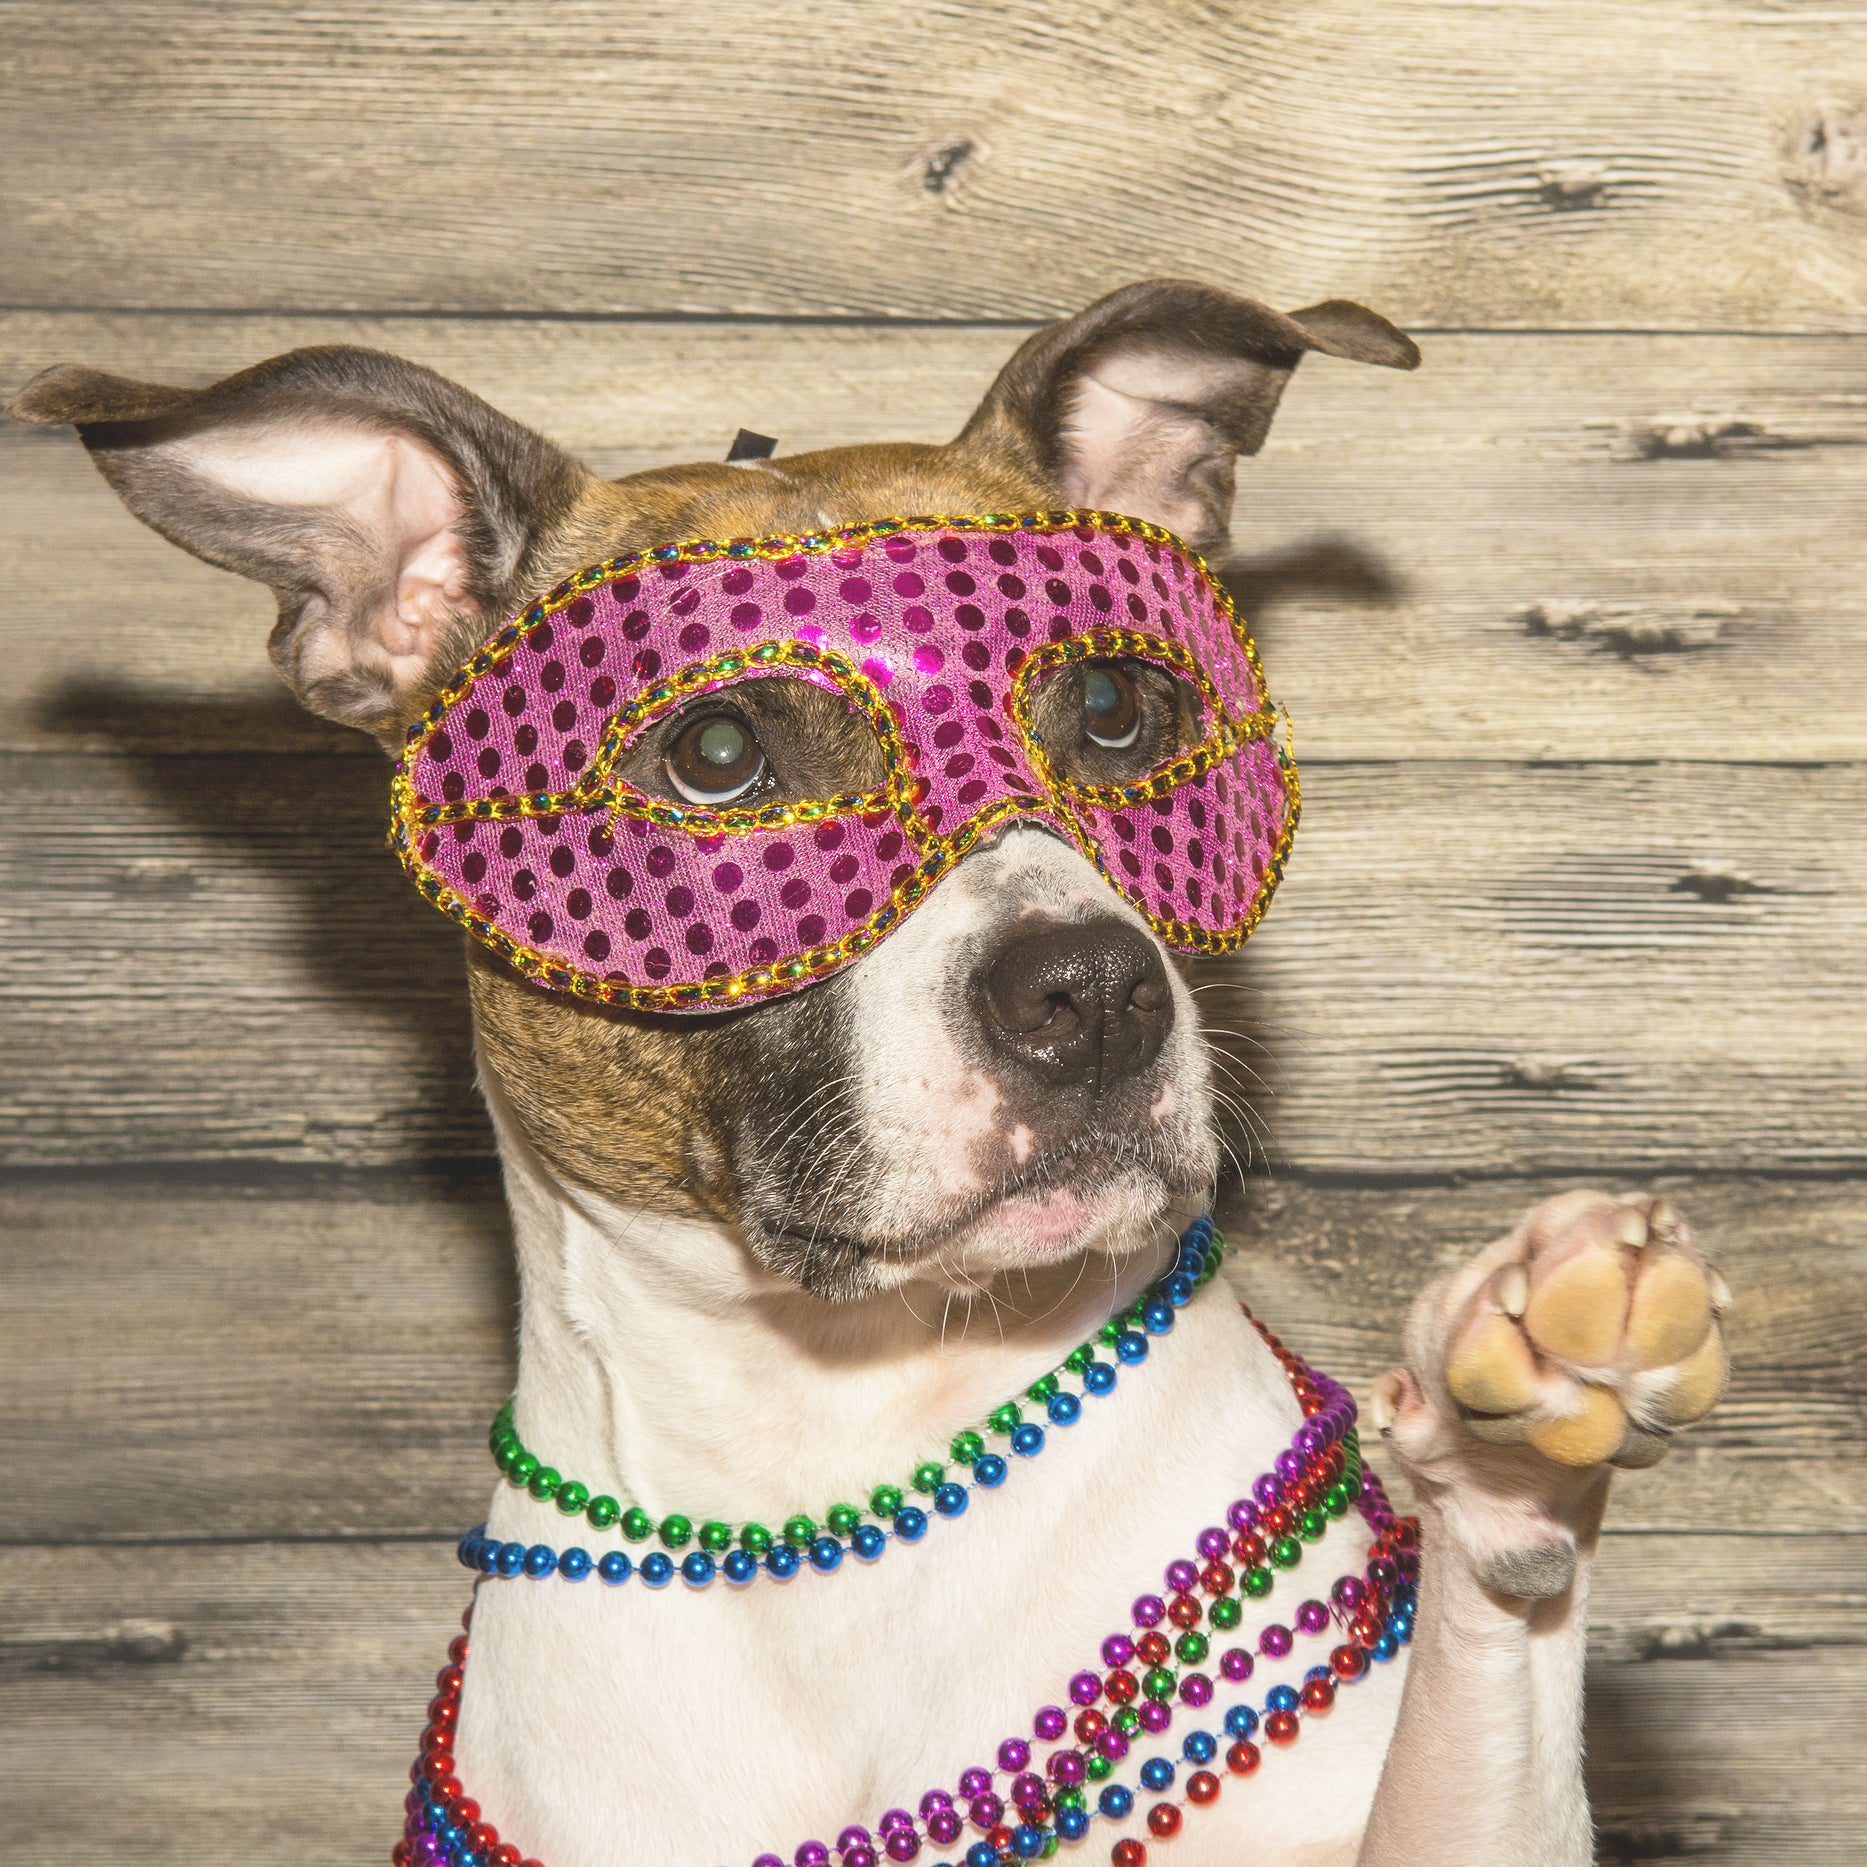 Small dog dressed in mask and beads for Mardi Gras